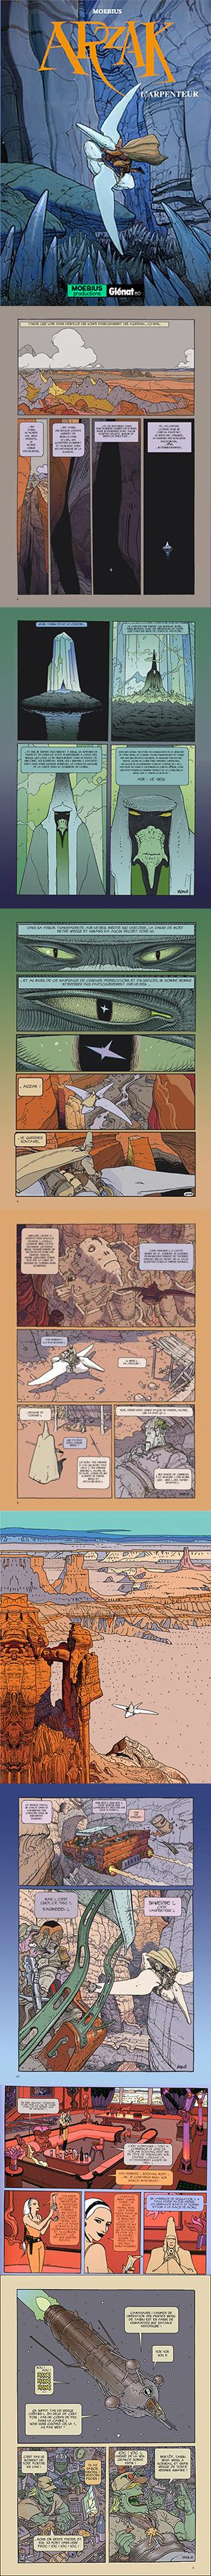 Arzach is a comic book collection of four wordless short stories by artist/author Jean 'Moebius' Giraud, which were originally published in the French sci-fi/fantasy comics magazine Métal Hurlant. The 2010 book Arzak: L'Arpenteur (Arzak: The Surveyor) was the first of a planned trilogy to explore the origin of the character. However, with the death of Jean Giraud in March 2012, this vision was never realised.